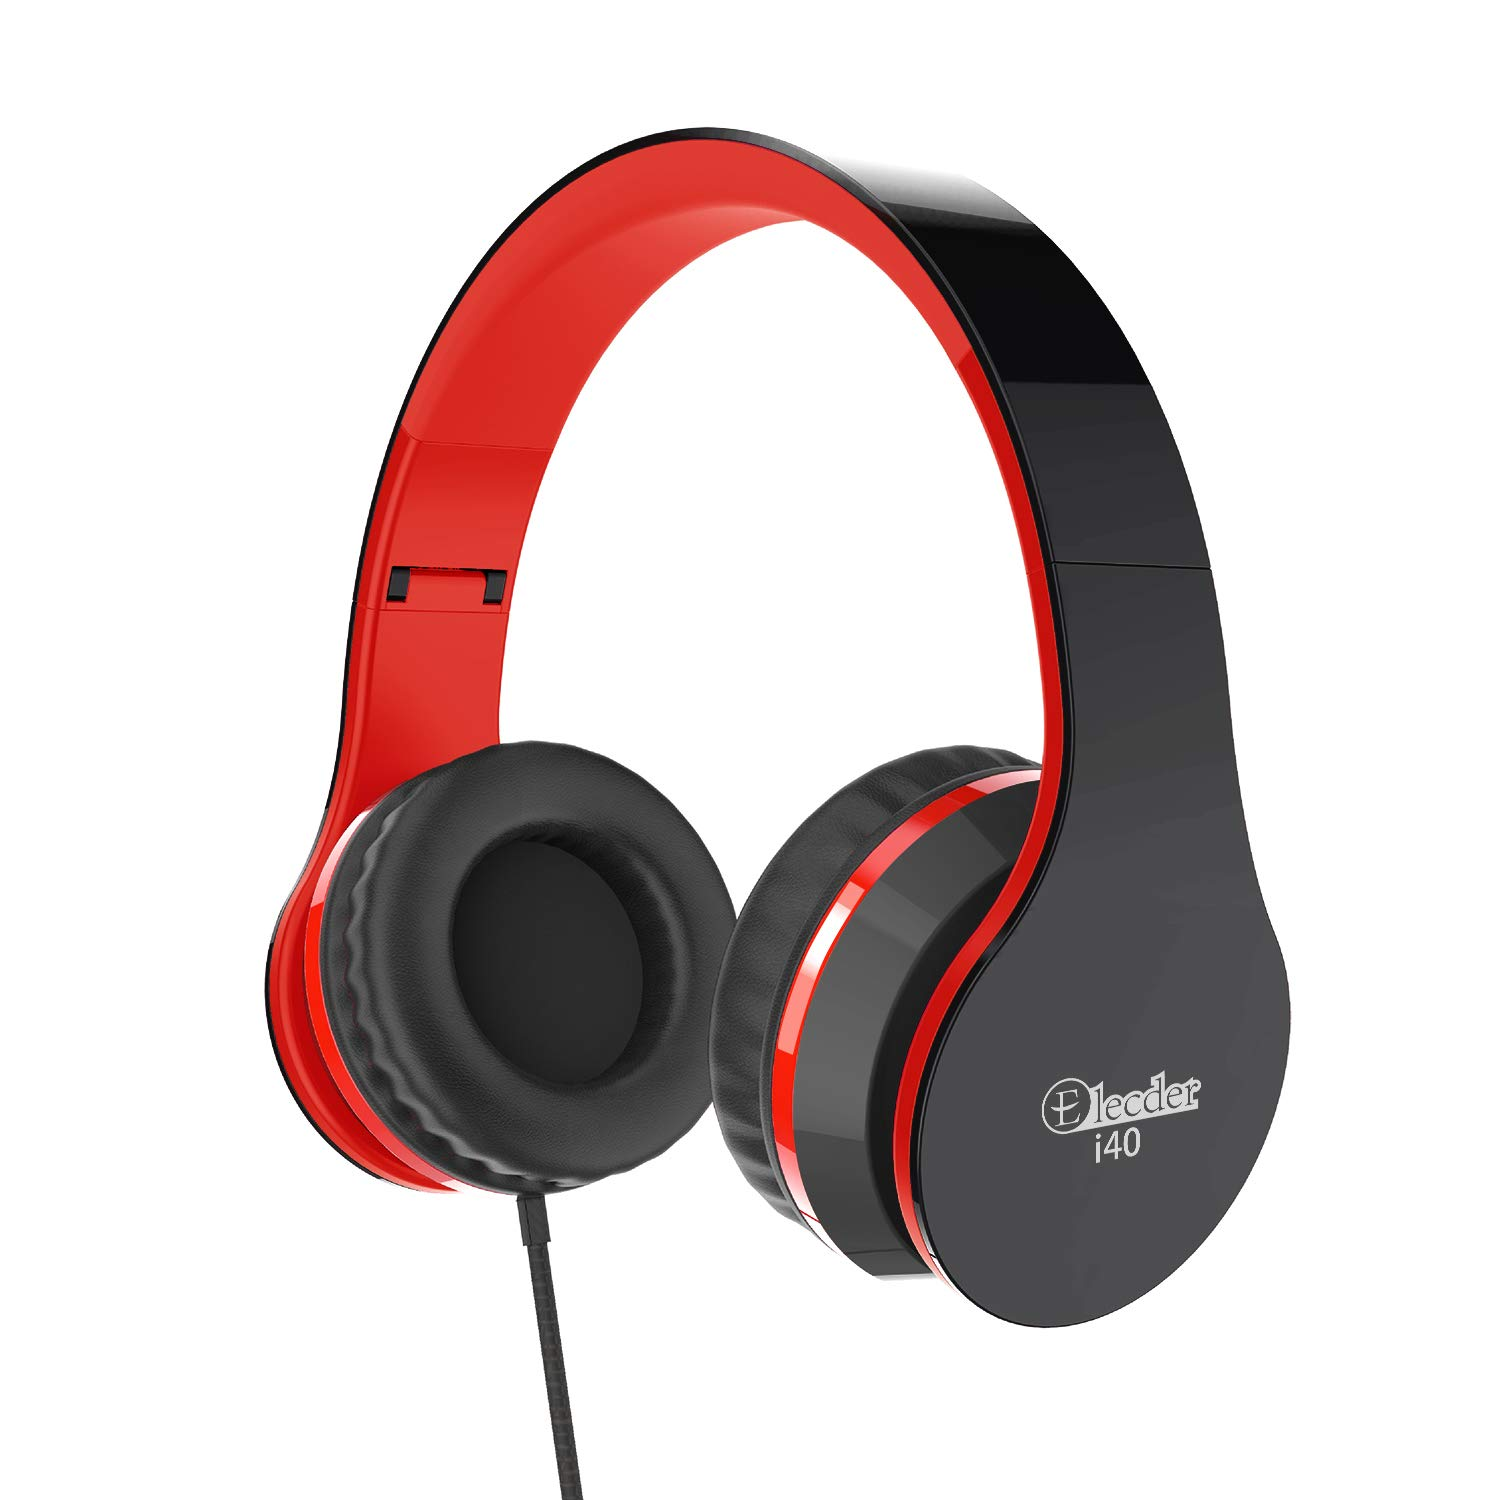 Elecder i40 Headphones with Microphone for Kids Children Girls Boys Teens Adults Foldable Adjustable Wired On Ear Headsets for iPad Cellphones Computer MP3/4 (Red/Black)